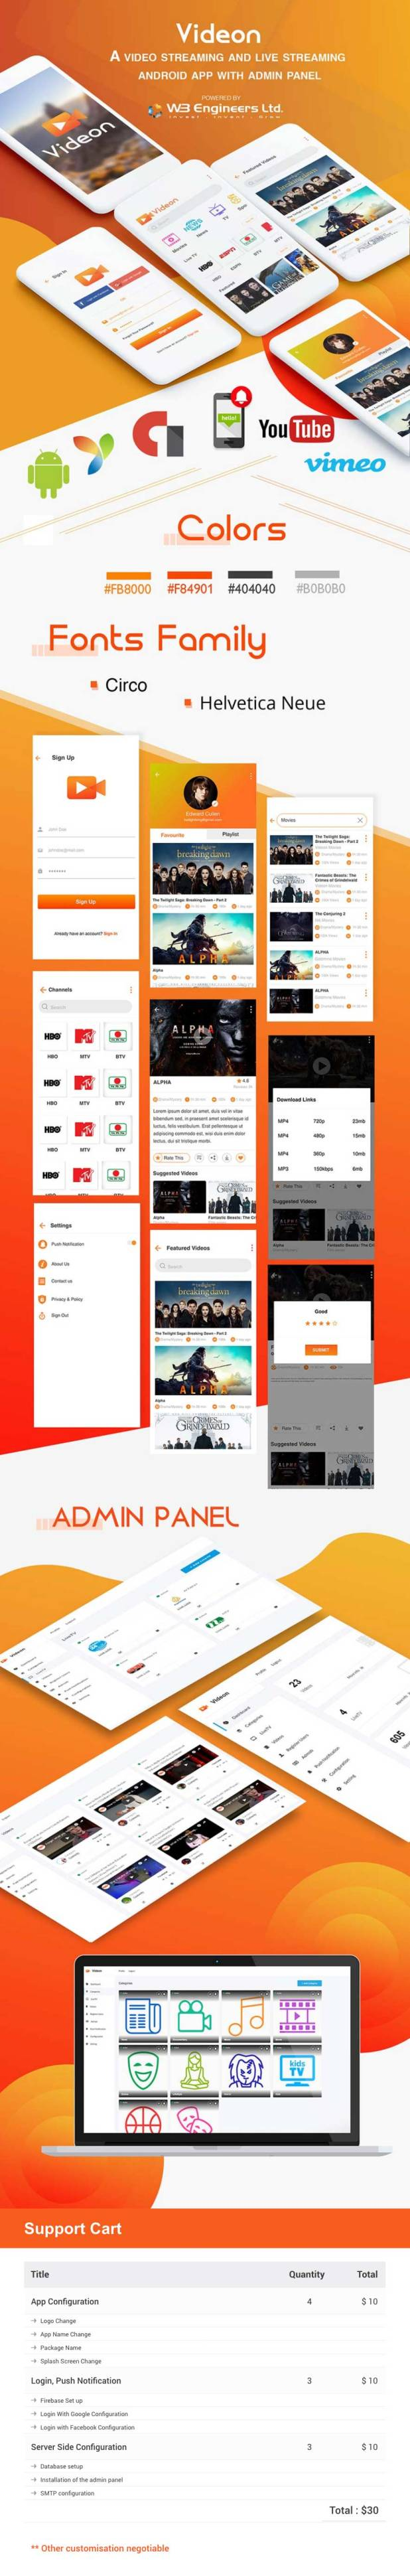 Videon - A video streaming android app with admin panel - 6